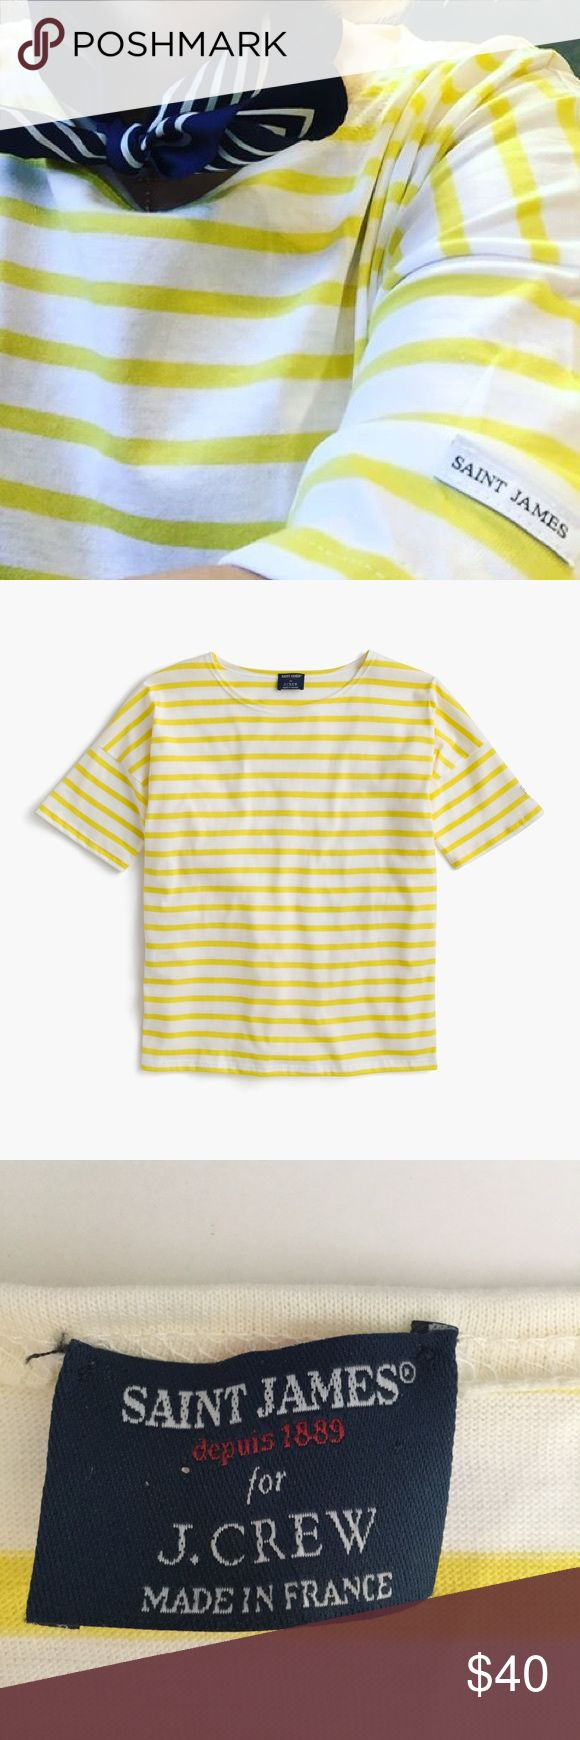 Saint James For J. Crew short sleeve slouchy tee Saint James has been spinning some of the world's finest knits out of its Normandy-based factory since 1889 and has become famous for its Breton shirt, a nautical-inspired style featuring classic stripes. Designed exclusively for J. crew, this airy cotton version features a roomy body and slimmer sleeves. The quintessential summer tee!! In excellent condition. The navy photos are included to show fit. J. Crew Tops Tees - Short Sleeve